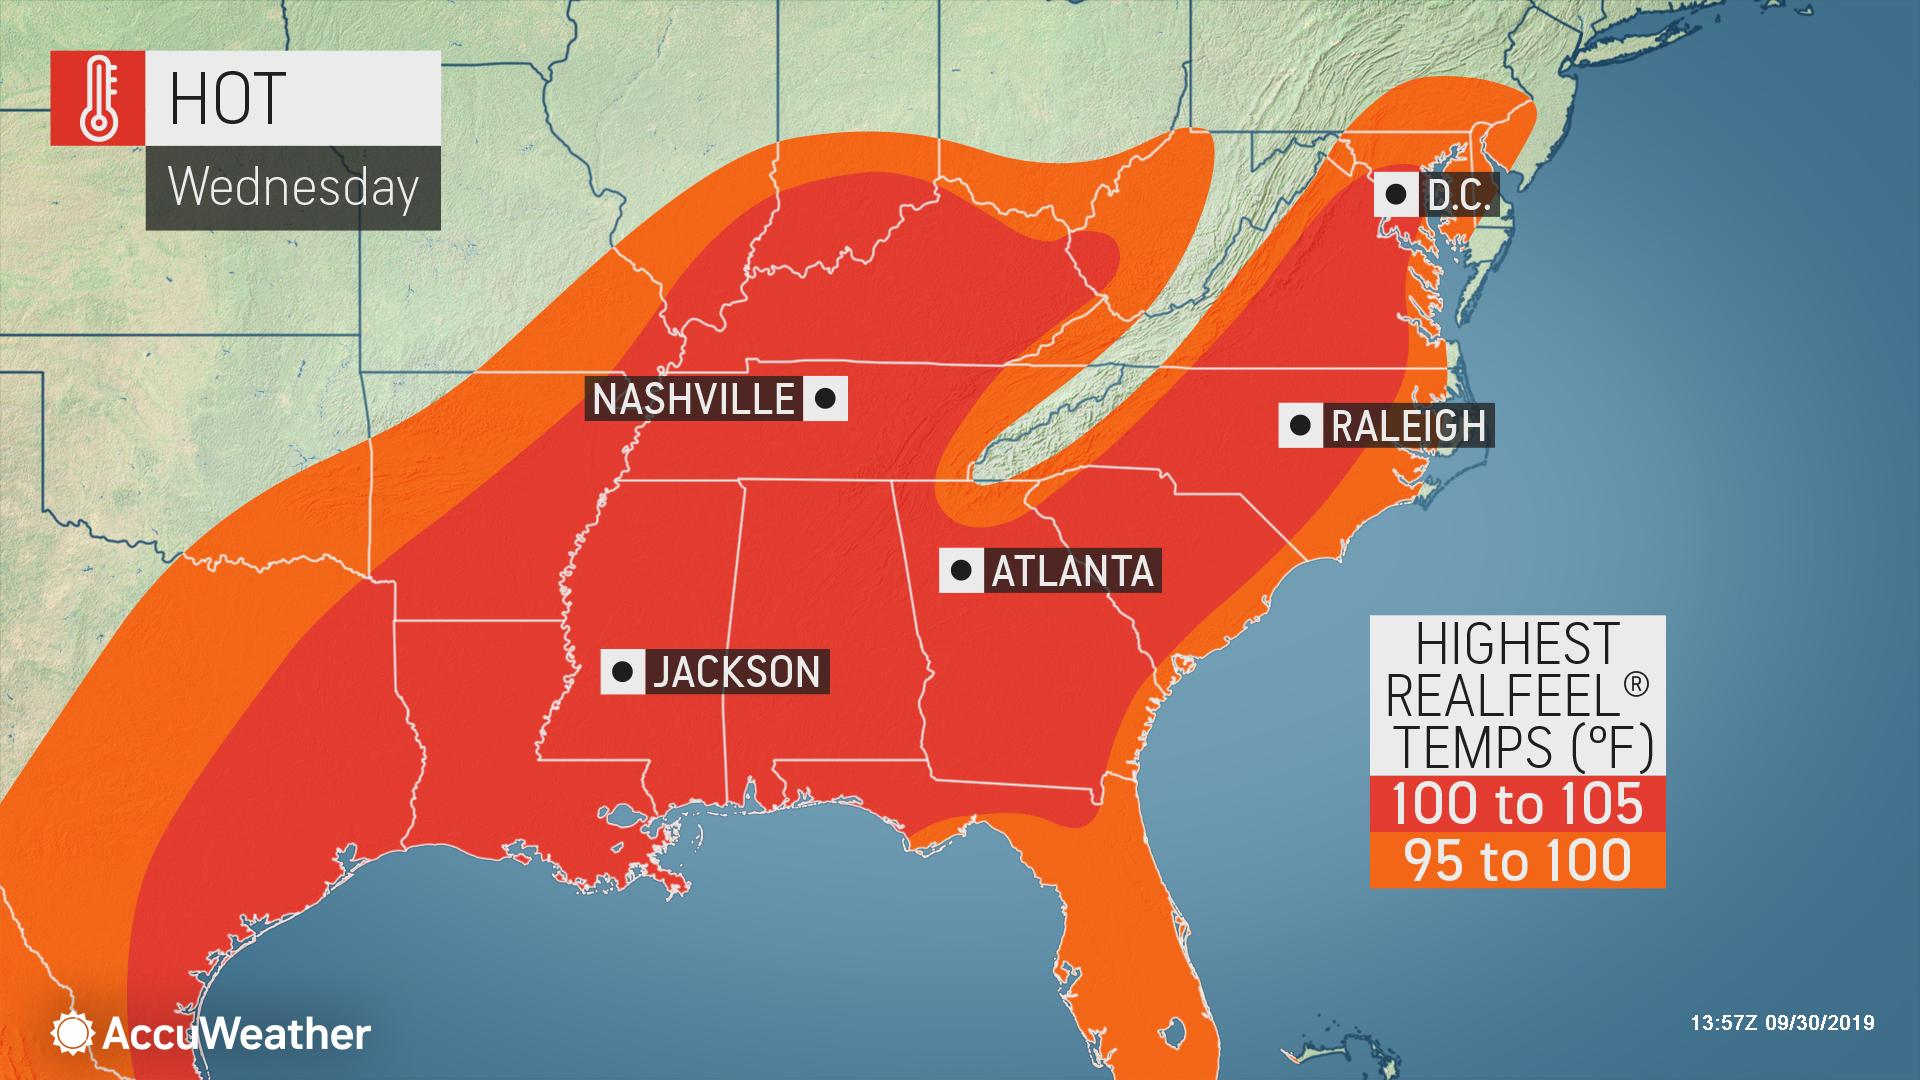 When will the record-challenging heat ease across the South